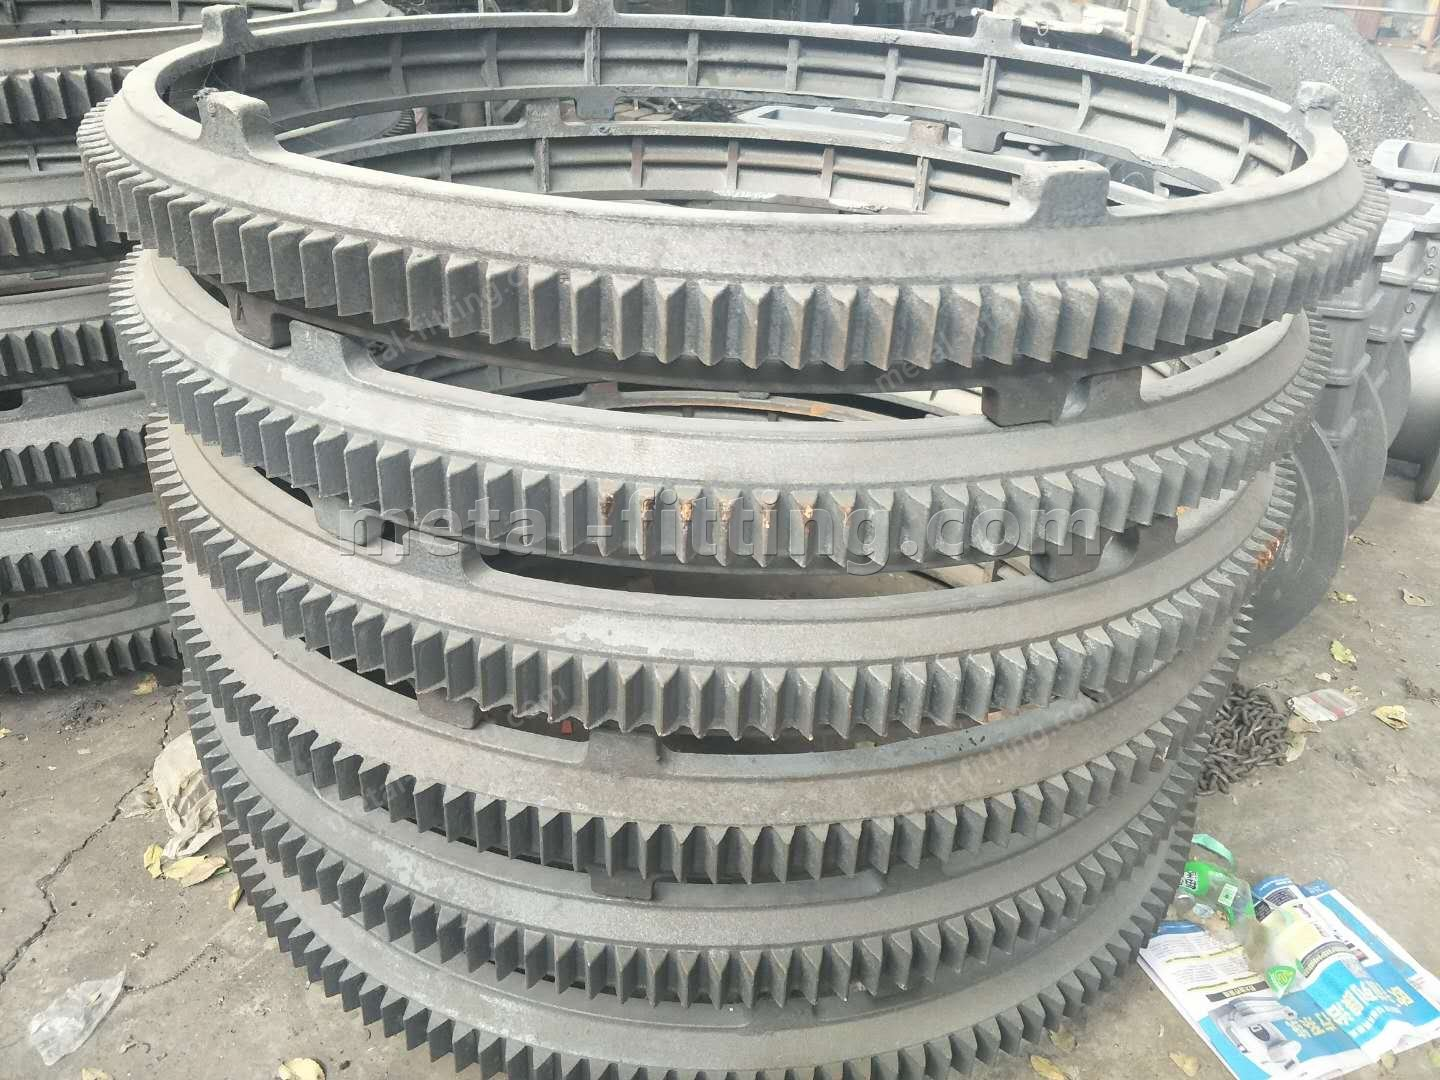 Casted iron Ring Gear and Pulley for concret Mixer-287782734995994966